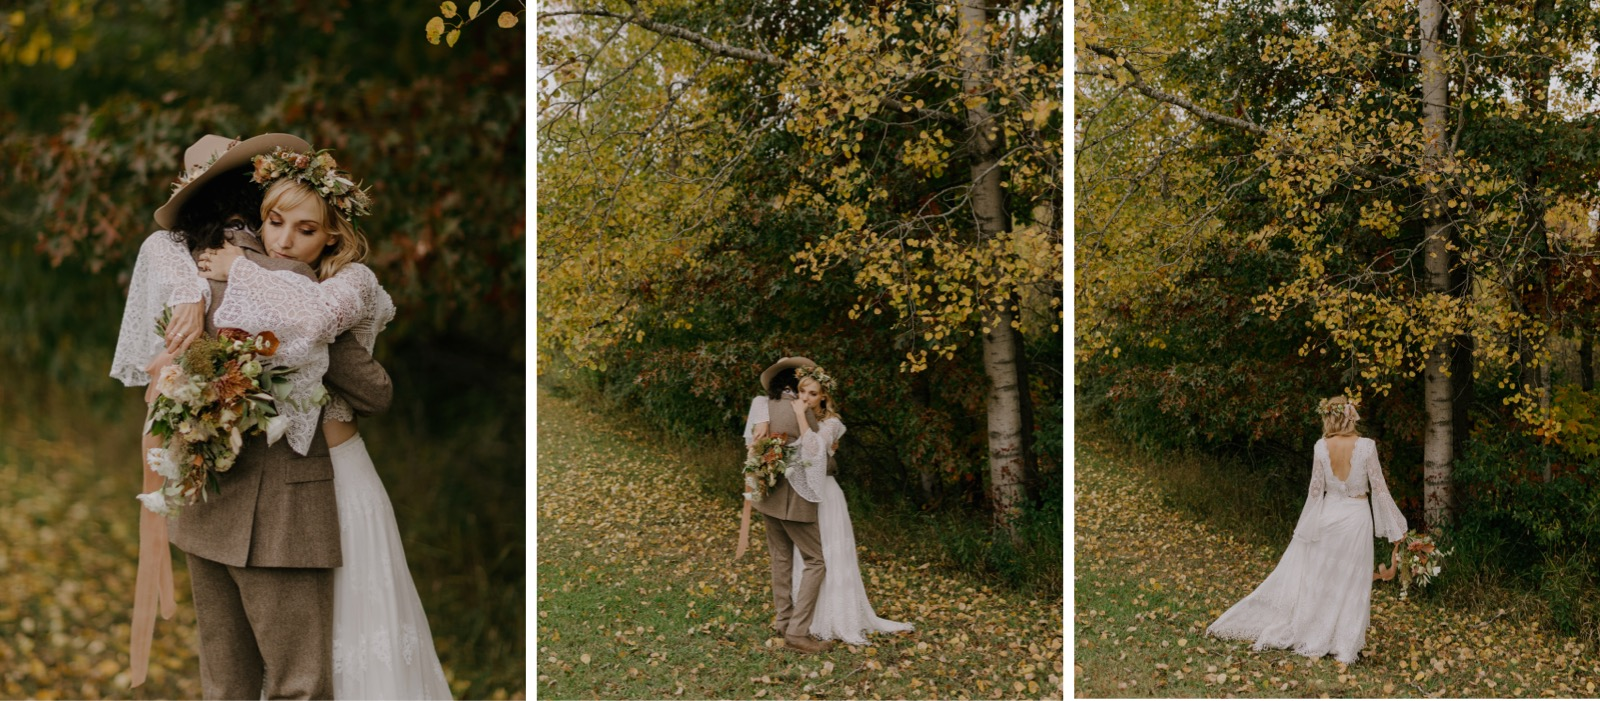 103_Jessy & Perry Wedding 0500_Jessy & Perry Wedding 0493_Jessy & Perry Wedding 0496_autumn_cinematic_outdoor_family_fall_michigan_barn_intimate_emotional_wedding